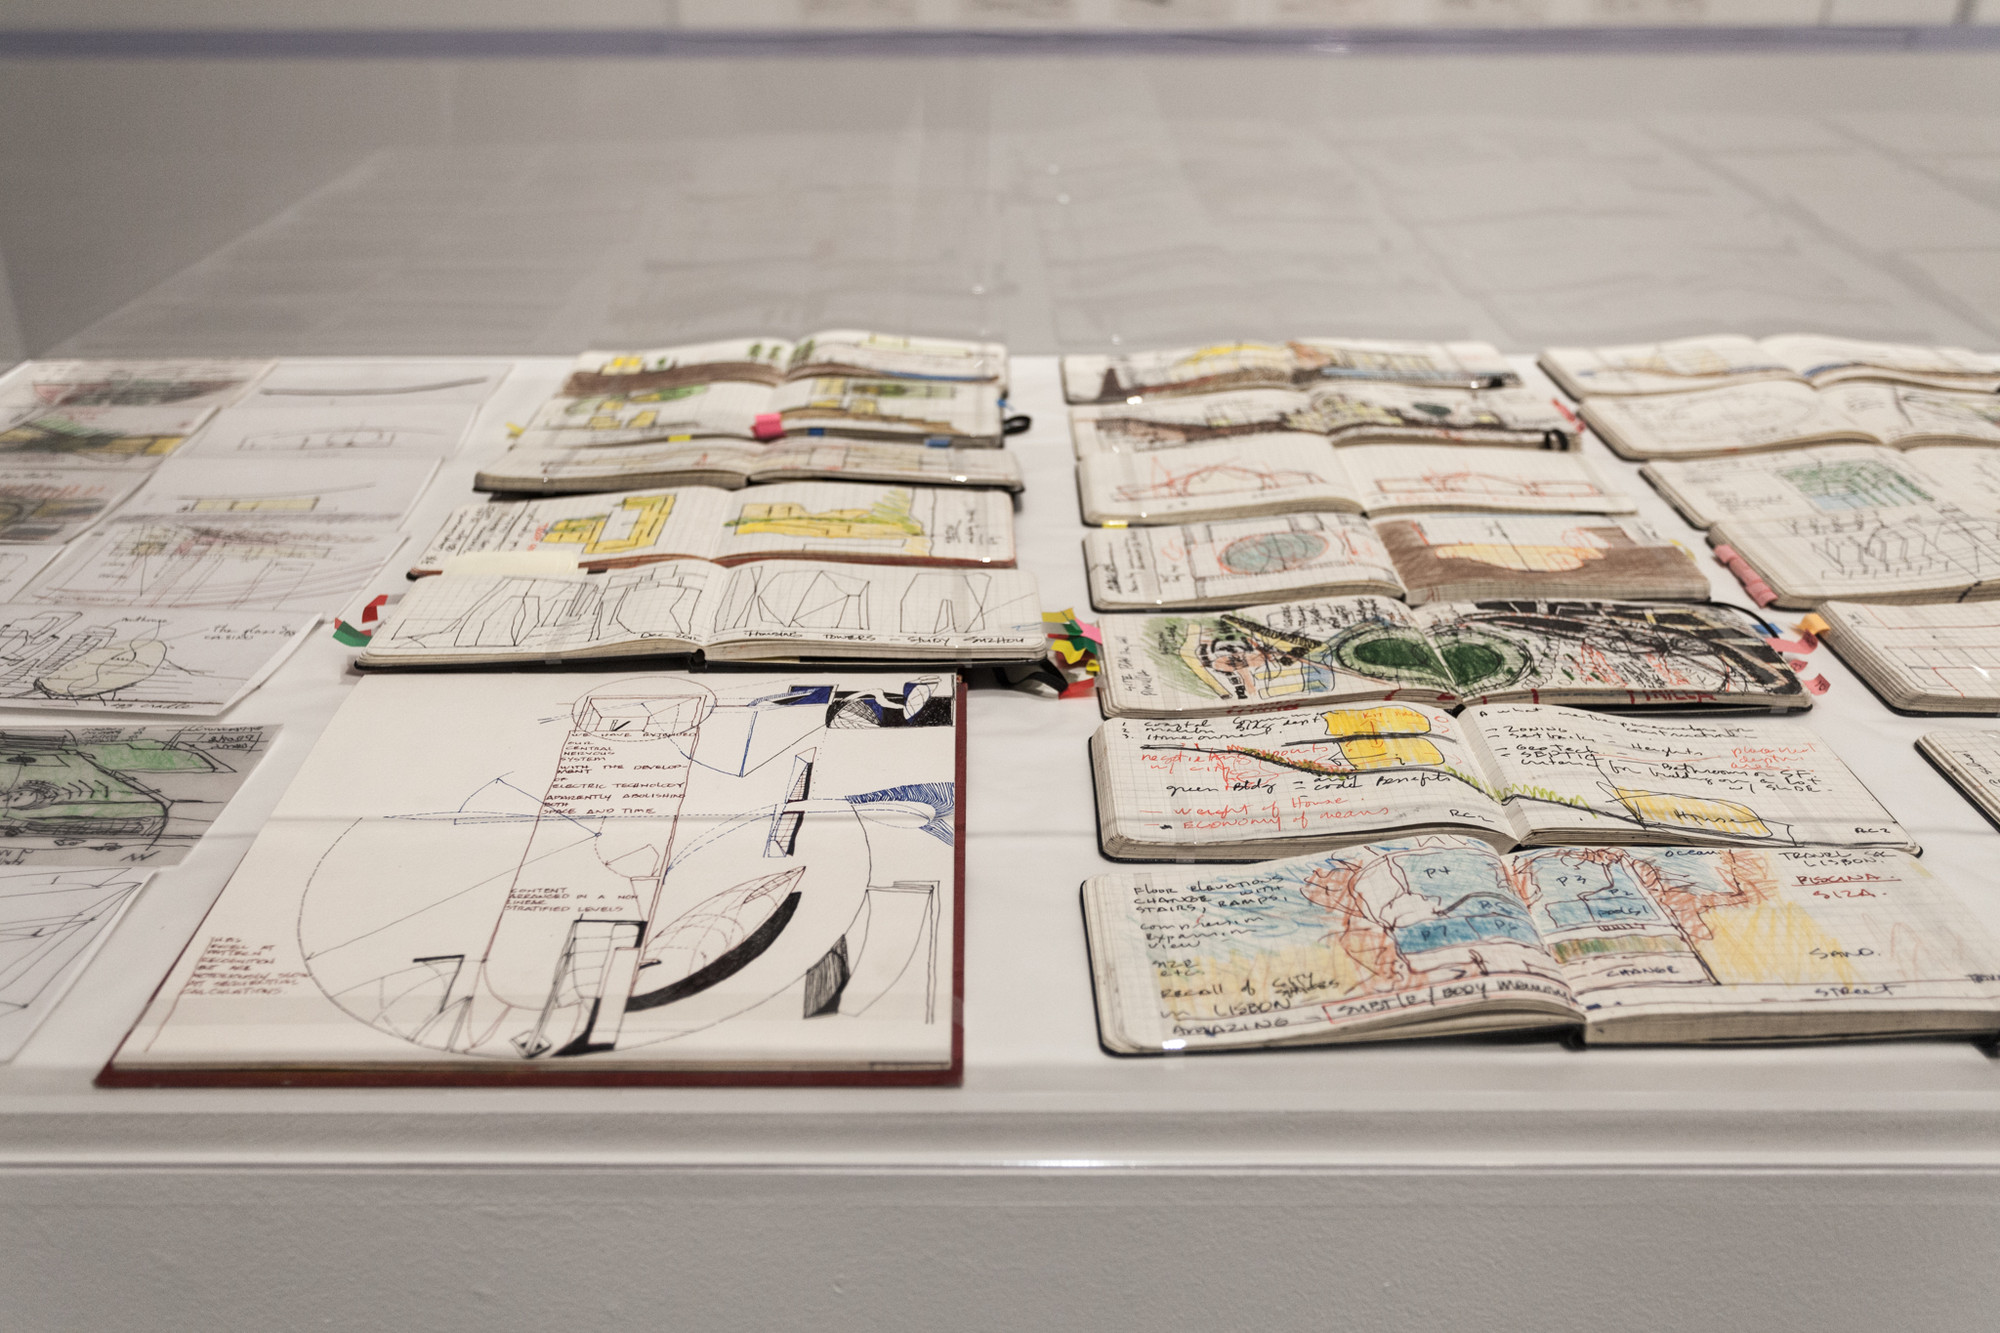 Sketchbooks by Michael Rotondi of RoTo Architects at The Museum of Contemporary Art, Los Angeles. Image © Taiyo Watanabe